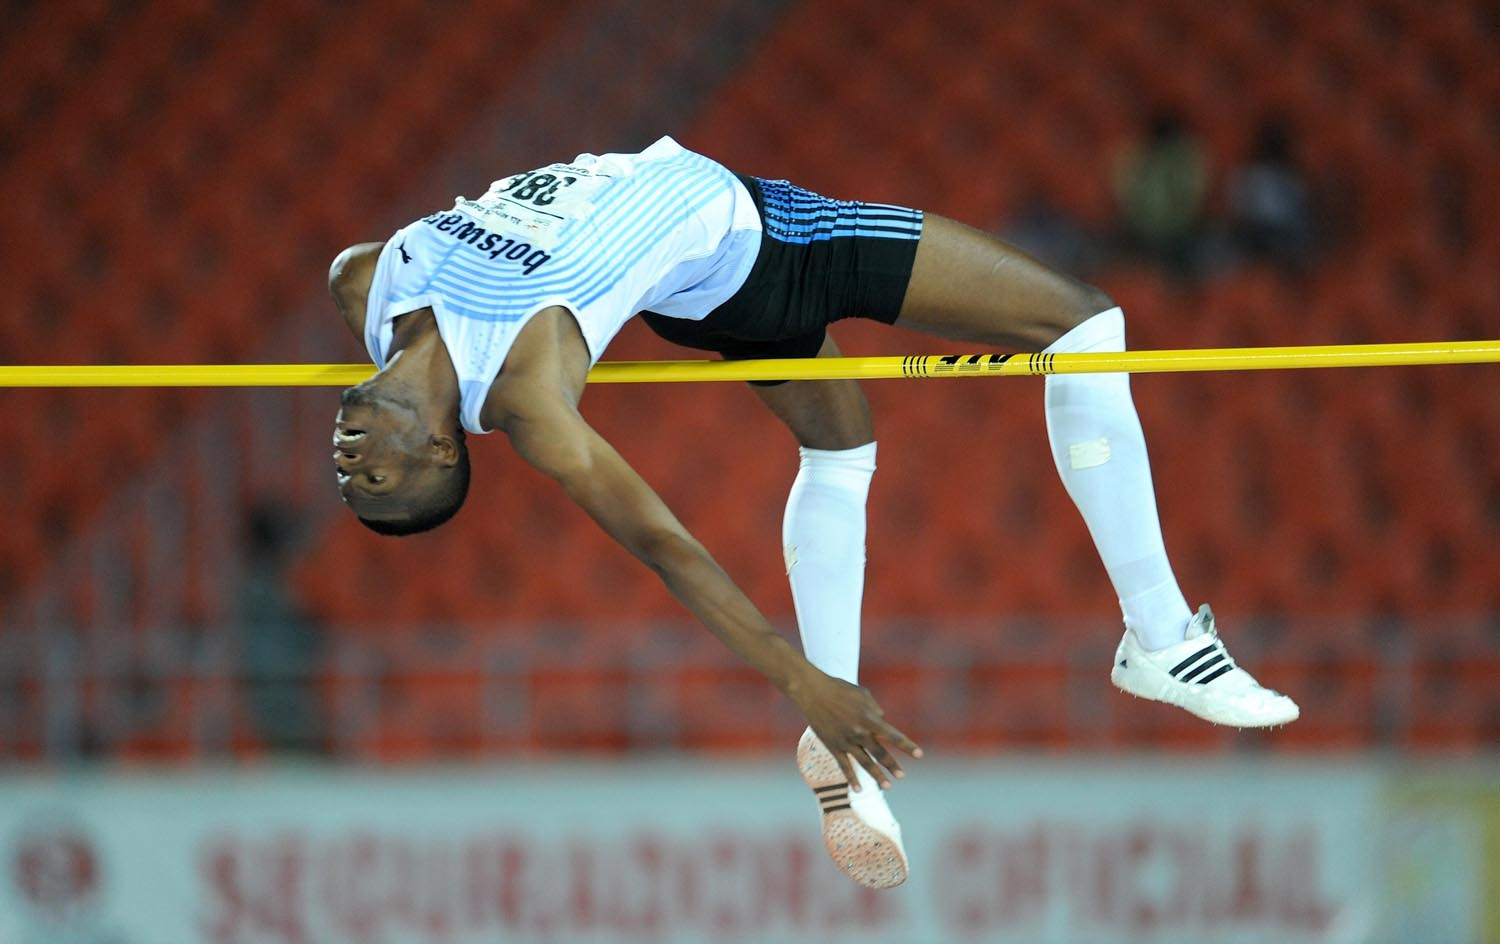 UJ student Kabelo Kgosiemang took gold in the high jump for Botswana at the African Games in September. Photo: Supplied